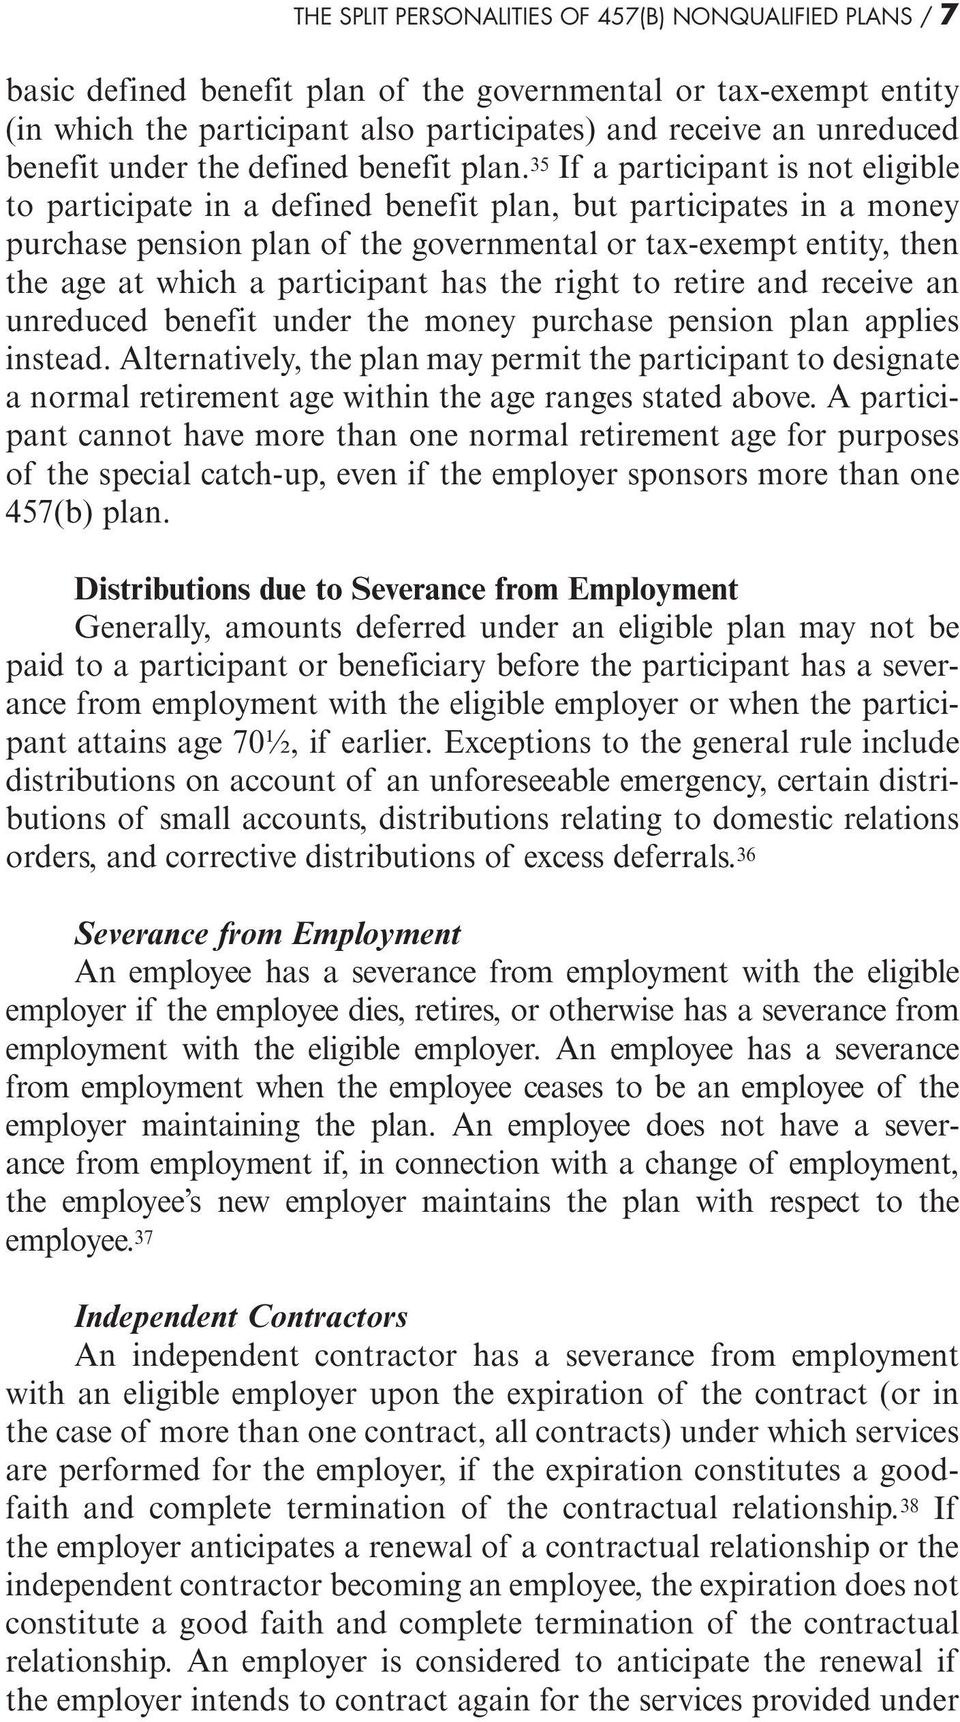 35 If a participant is not eligible to participate in a defined benefit plan, but participates in a money purchase pension plan of the governmental or tax-exempt entity, then the age at which a